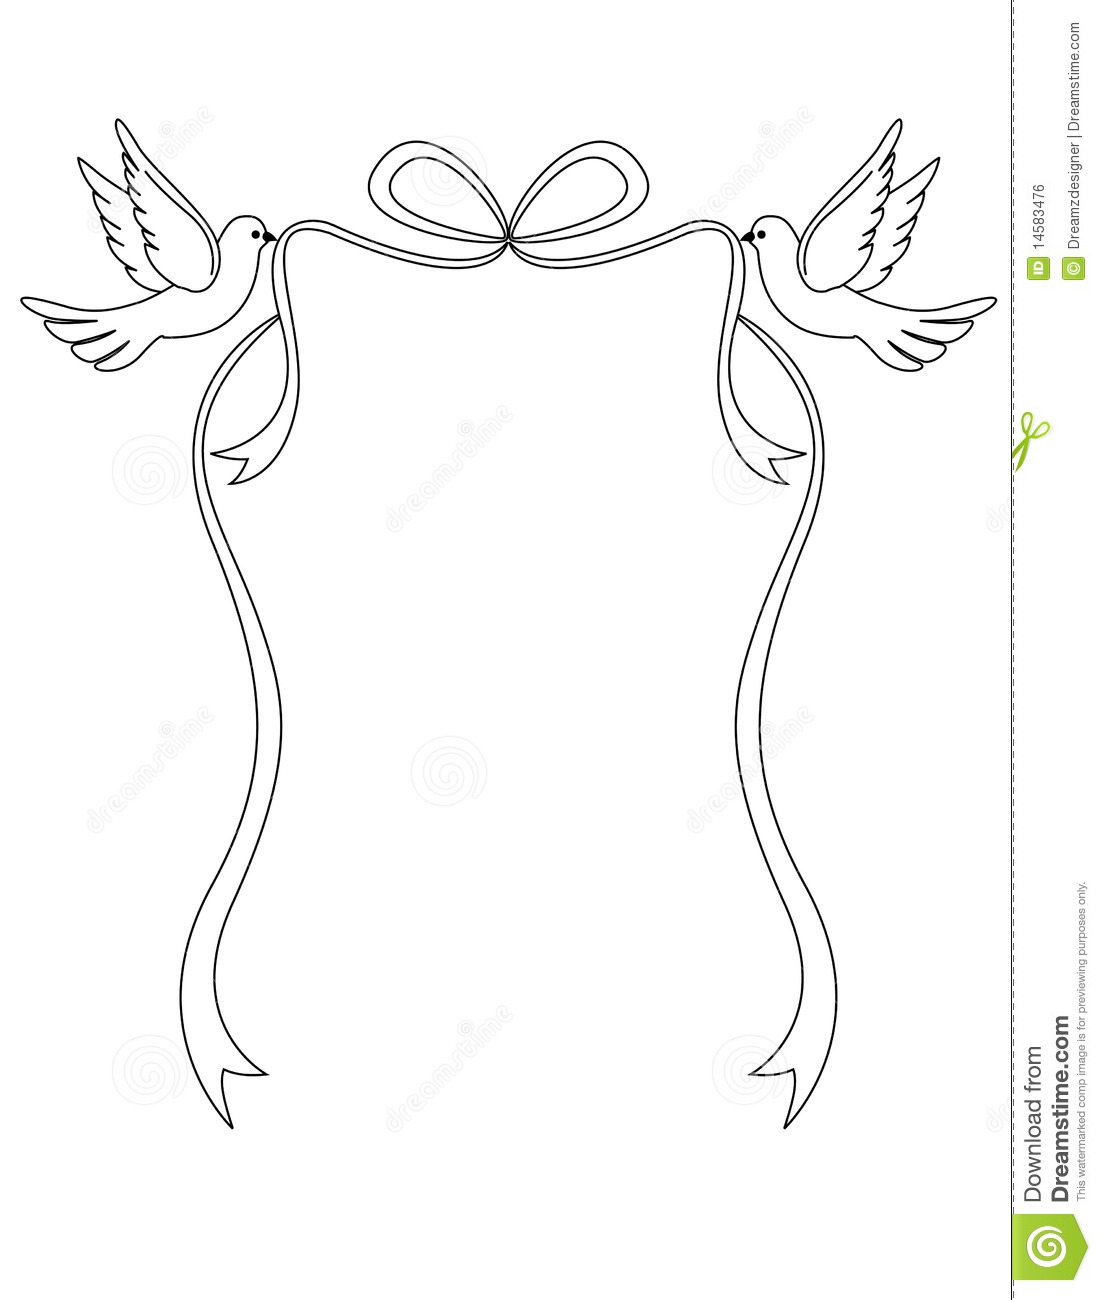 Doves Of Love Royalty Free Stock Image - Image: 14583476